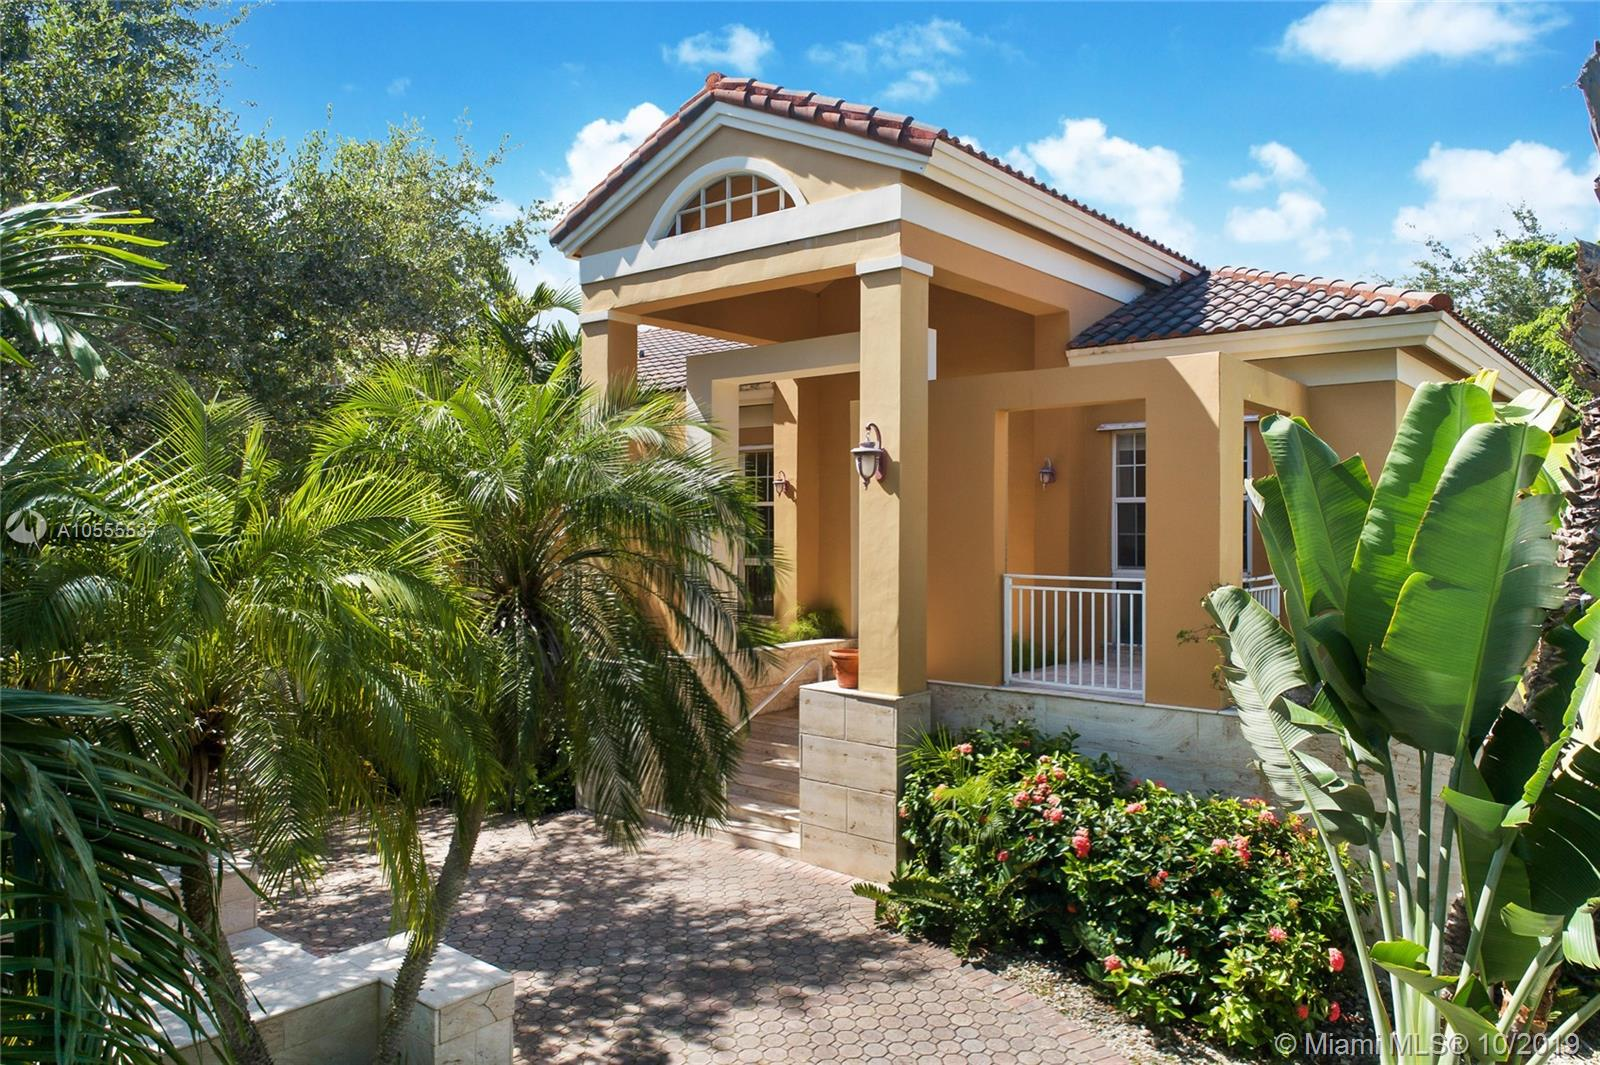 This Nature Lovers Paradise Is A Fame Award Winning Masterpiece Designed And Built By Its Current Architect Owner. It Is Located In The Gated Community Of Hammock Oaks Off Old Cutler In Coral Gables And Has 4 Bedrooms Plus Den/Studio And 4 Bathrooms With 4, 185 Adjusted Sq. Ft. It Has A Formal Living And Dining Room And A Large Open Kitchen/ Family Room Area. All Main Living Areas Open With A Stunning And Expansive View Of The Large Covered Rear Terrace And A 36+Ógé¼Gäó Long Swimming Pool With A Creek And Lushly Landscaped Yard Overlooking Fairchild Tropical Gardens. There Is A Beautiful Large Private Deck Over The Creek Where You Can Enjoy Nature At Its Best Both Day And Night! It Has An Over-Sized Two Car Garage On The Ground Floor. It Belongs To The Top Rated School District Of Pinecrest.